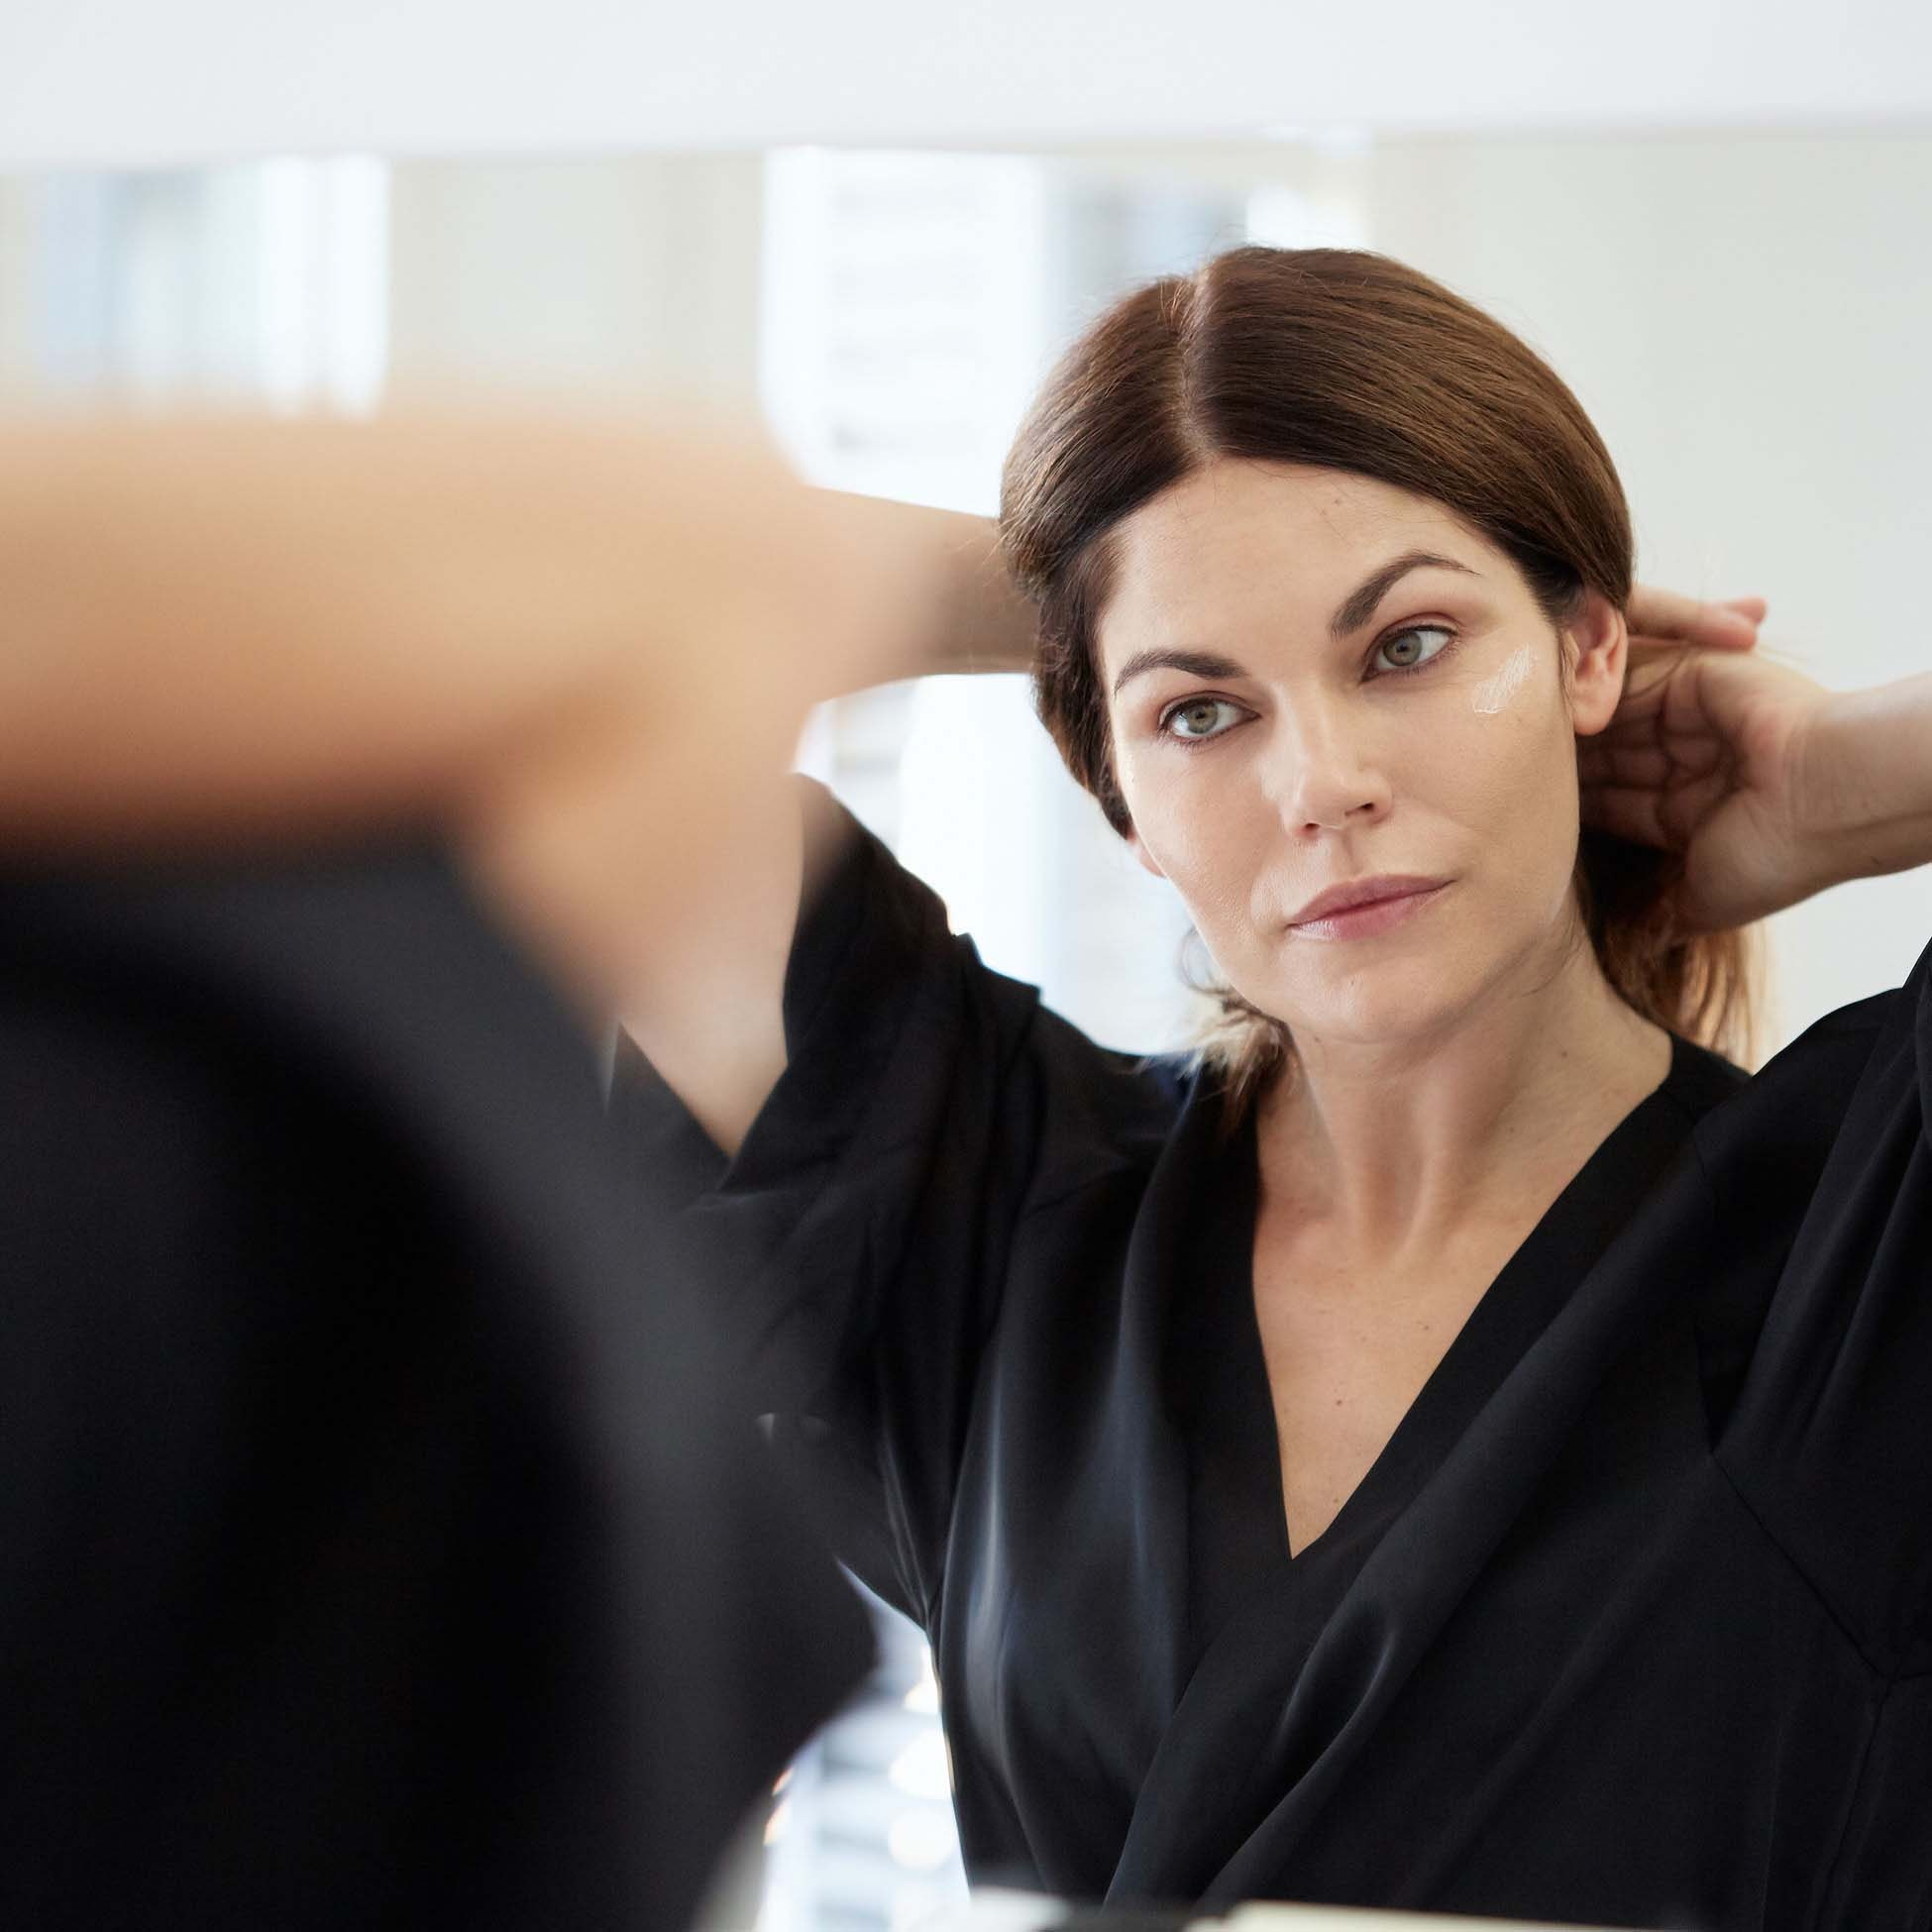 4 Reasons Your Anti-Aging Skincare Routine Isn't Working